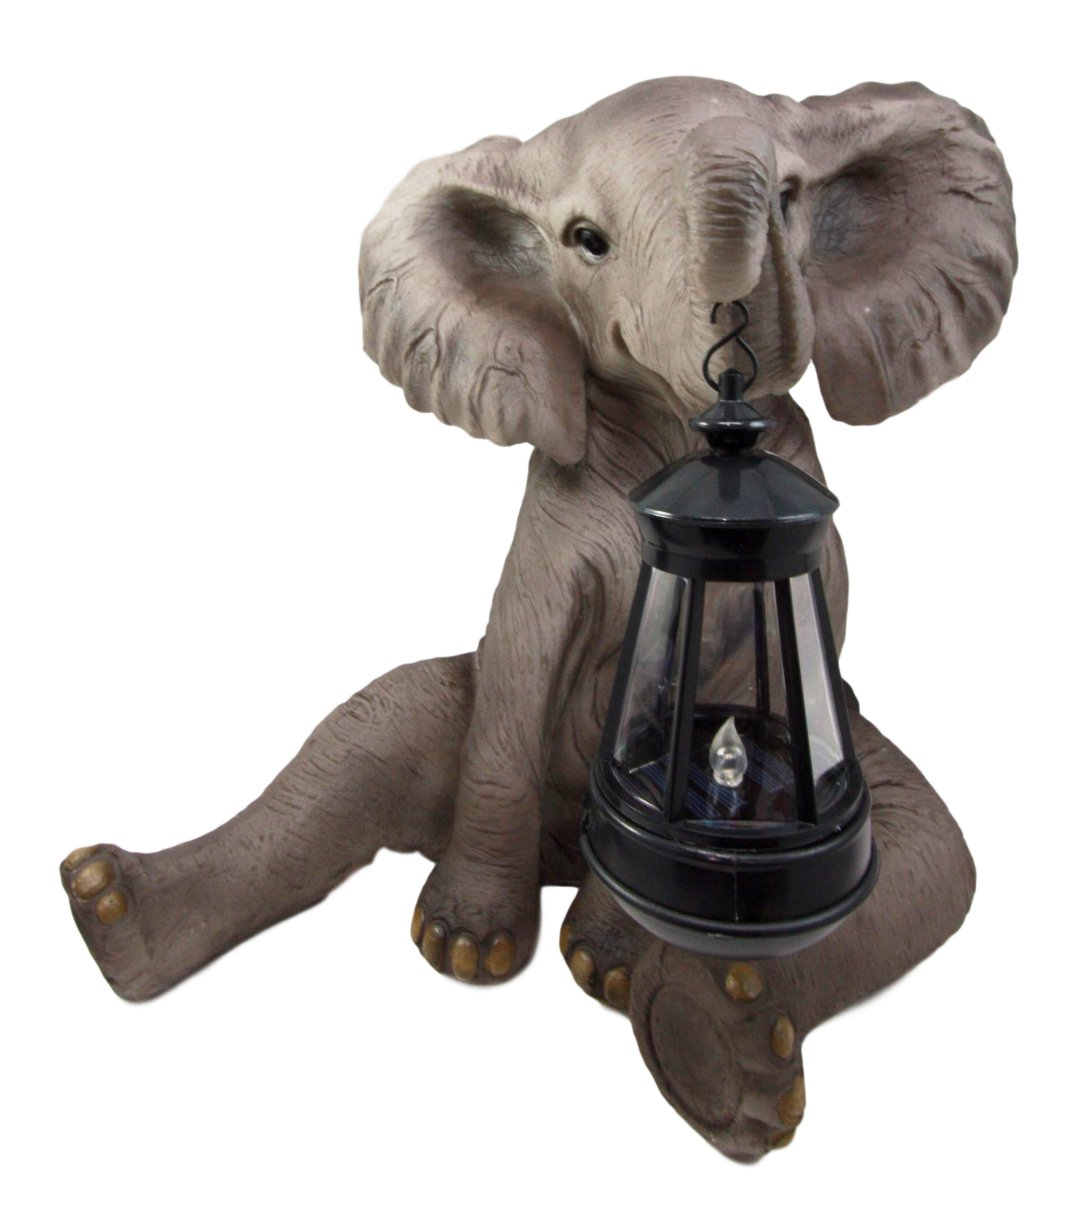 Ebros Safari Savanna Wildlife Animal Melee Adorable Pachy Elephant Statue Home Patio Decor Figurine with Solar LED Light Lantern Lamp 13.75''H Guest Greeter Courtesy Light Path Lighter Sculpture